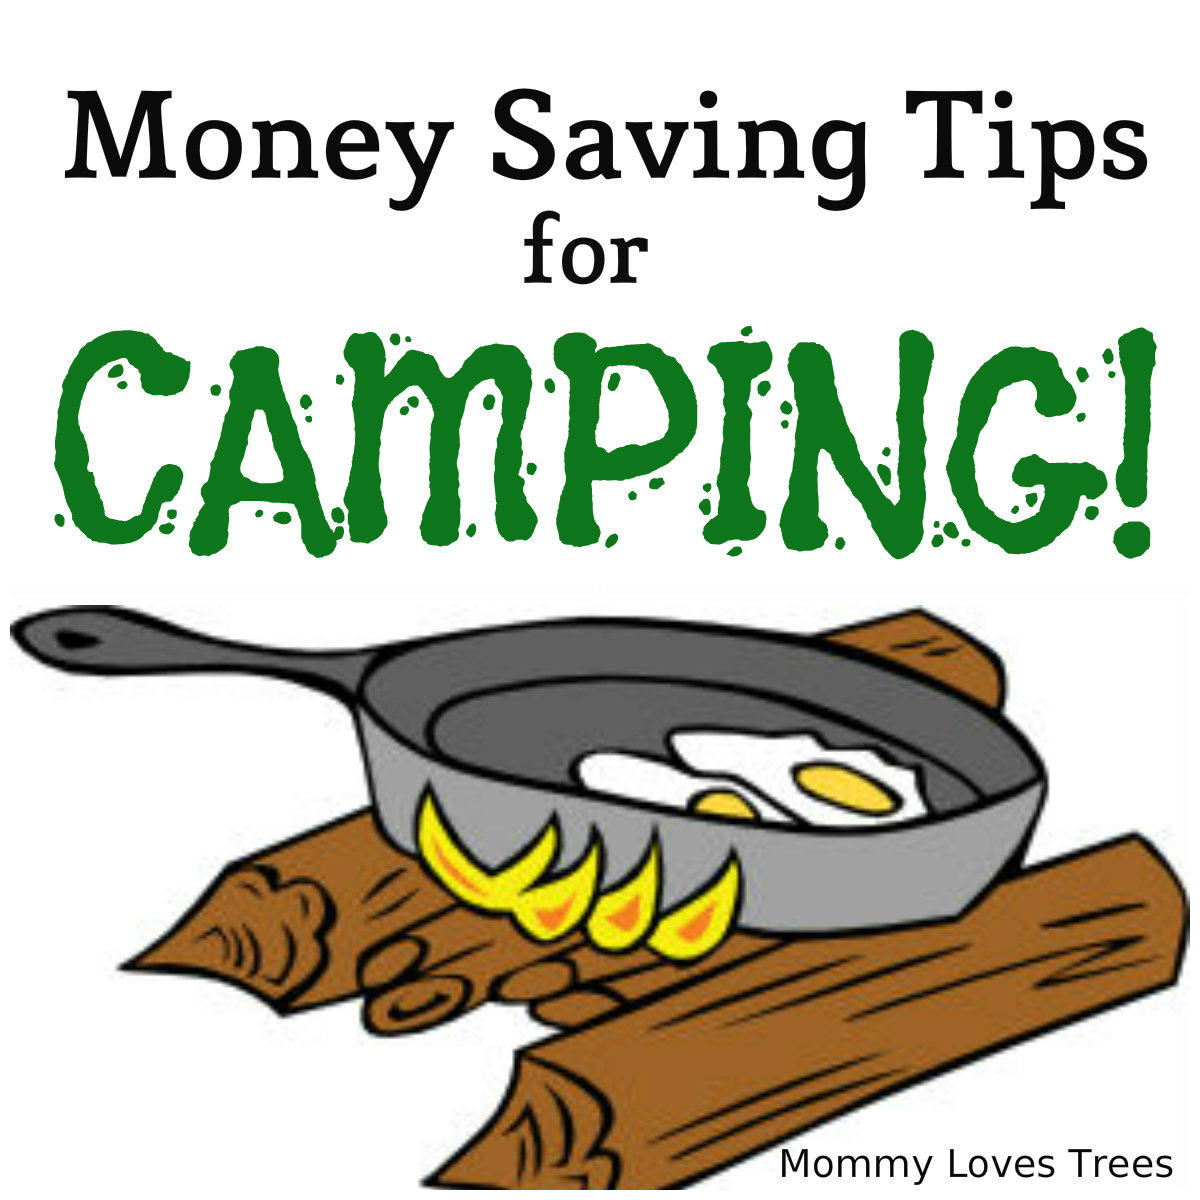 Money saving tips for car camping.